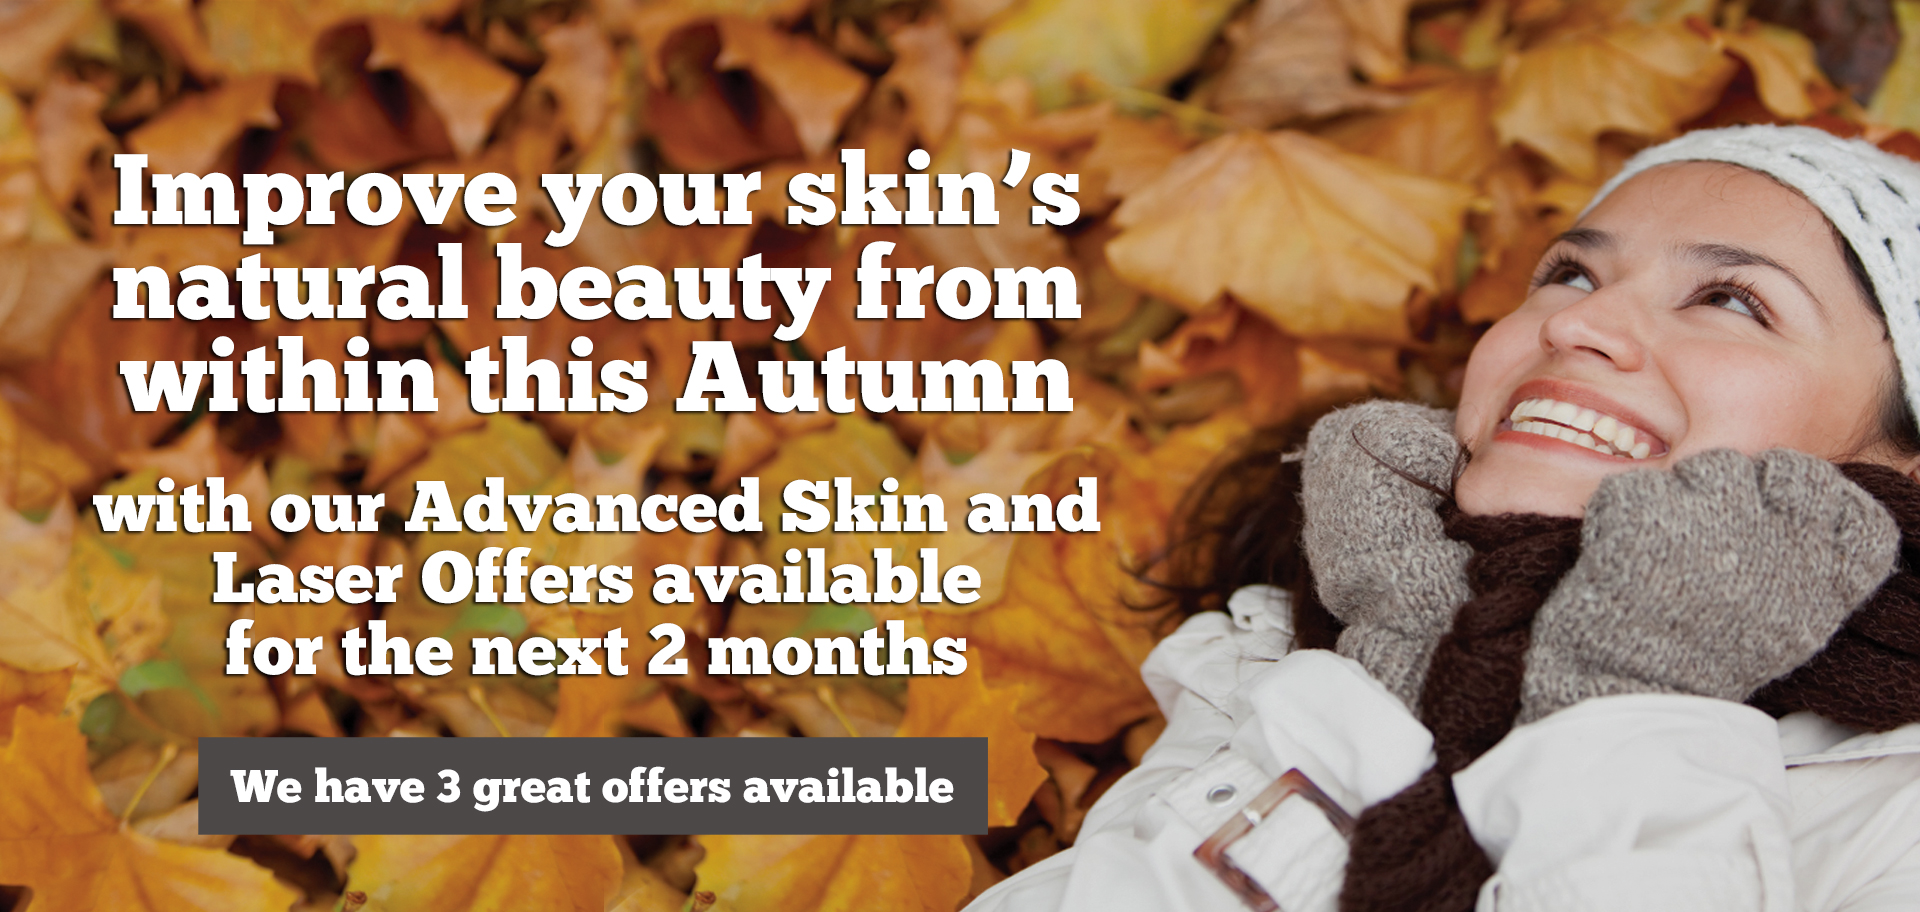 We have 3 new 'Autumn Advanced Skin and Laser Offers' for the months of September & October.